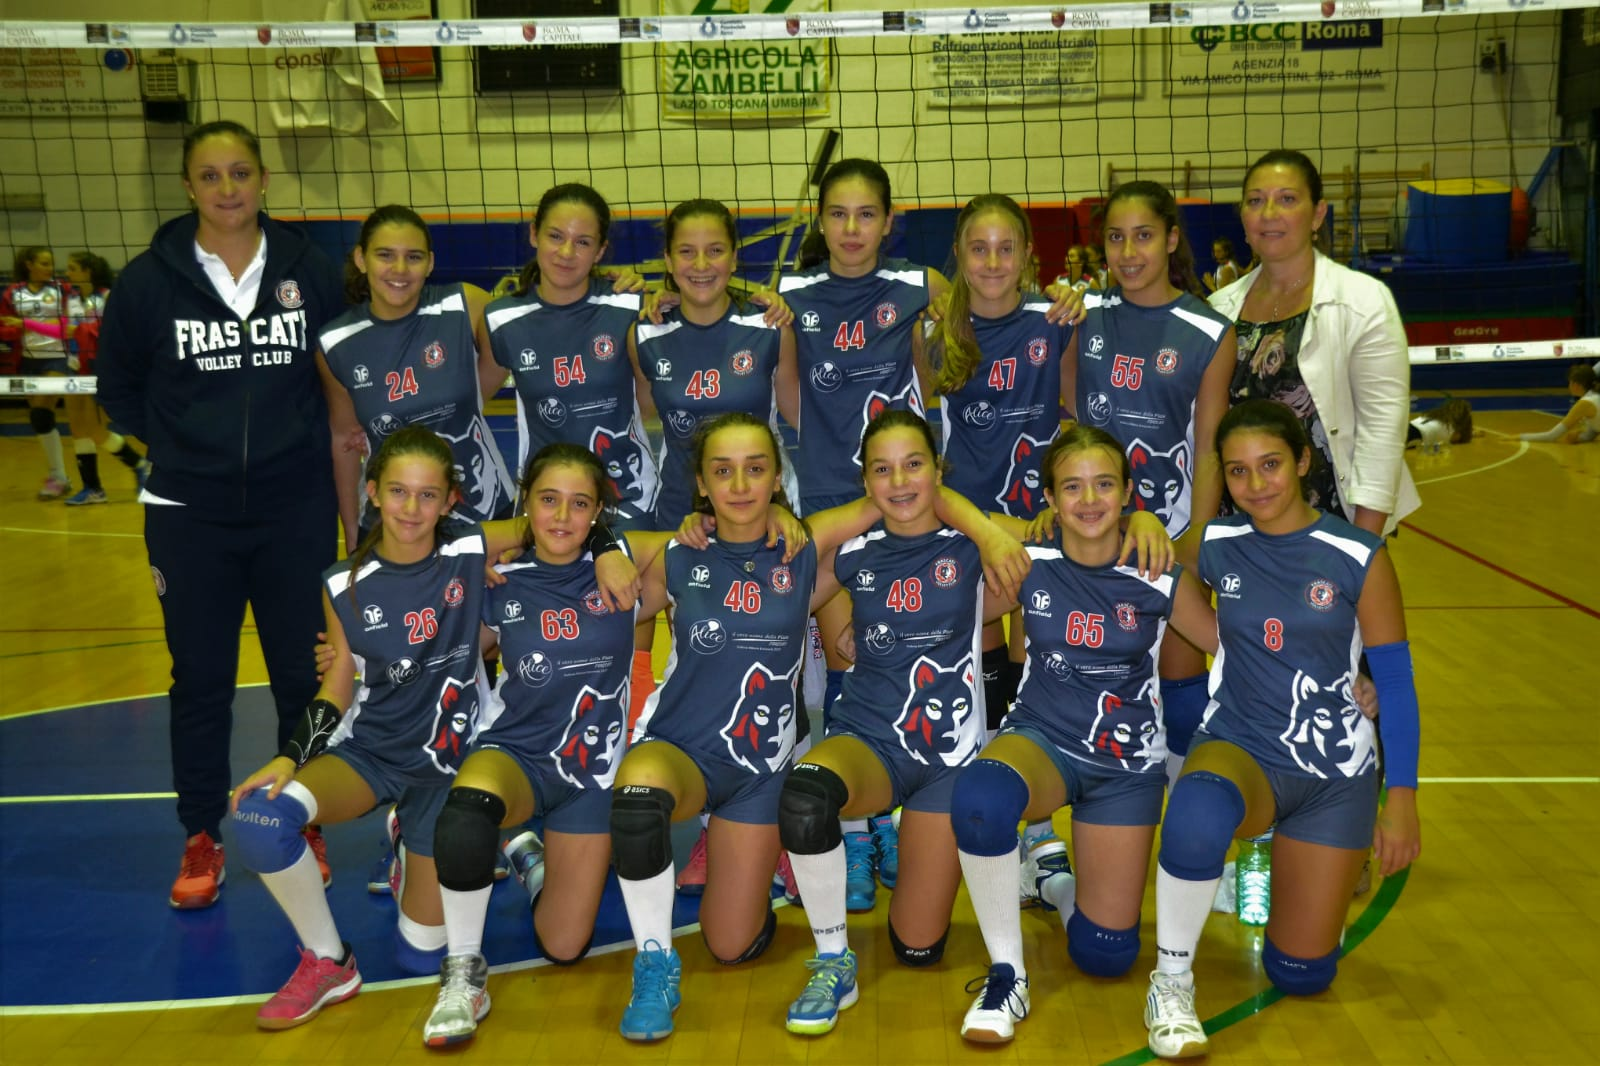 volley club frascati nuzzo